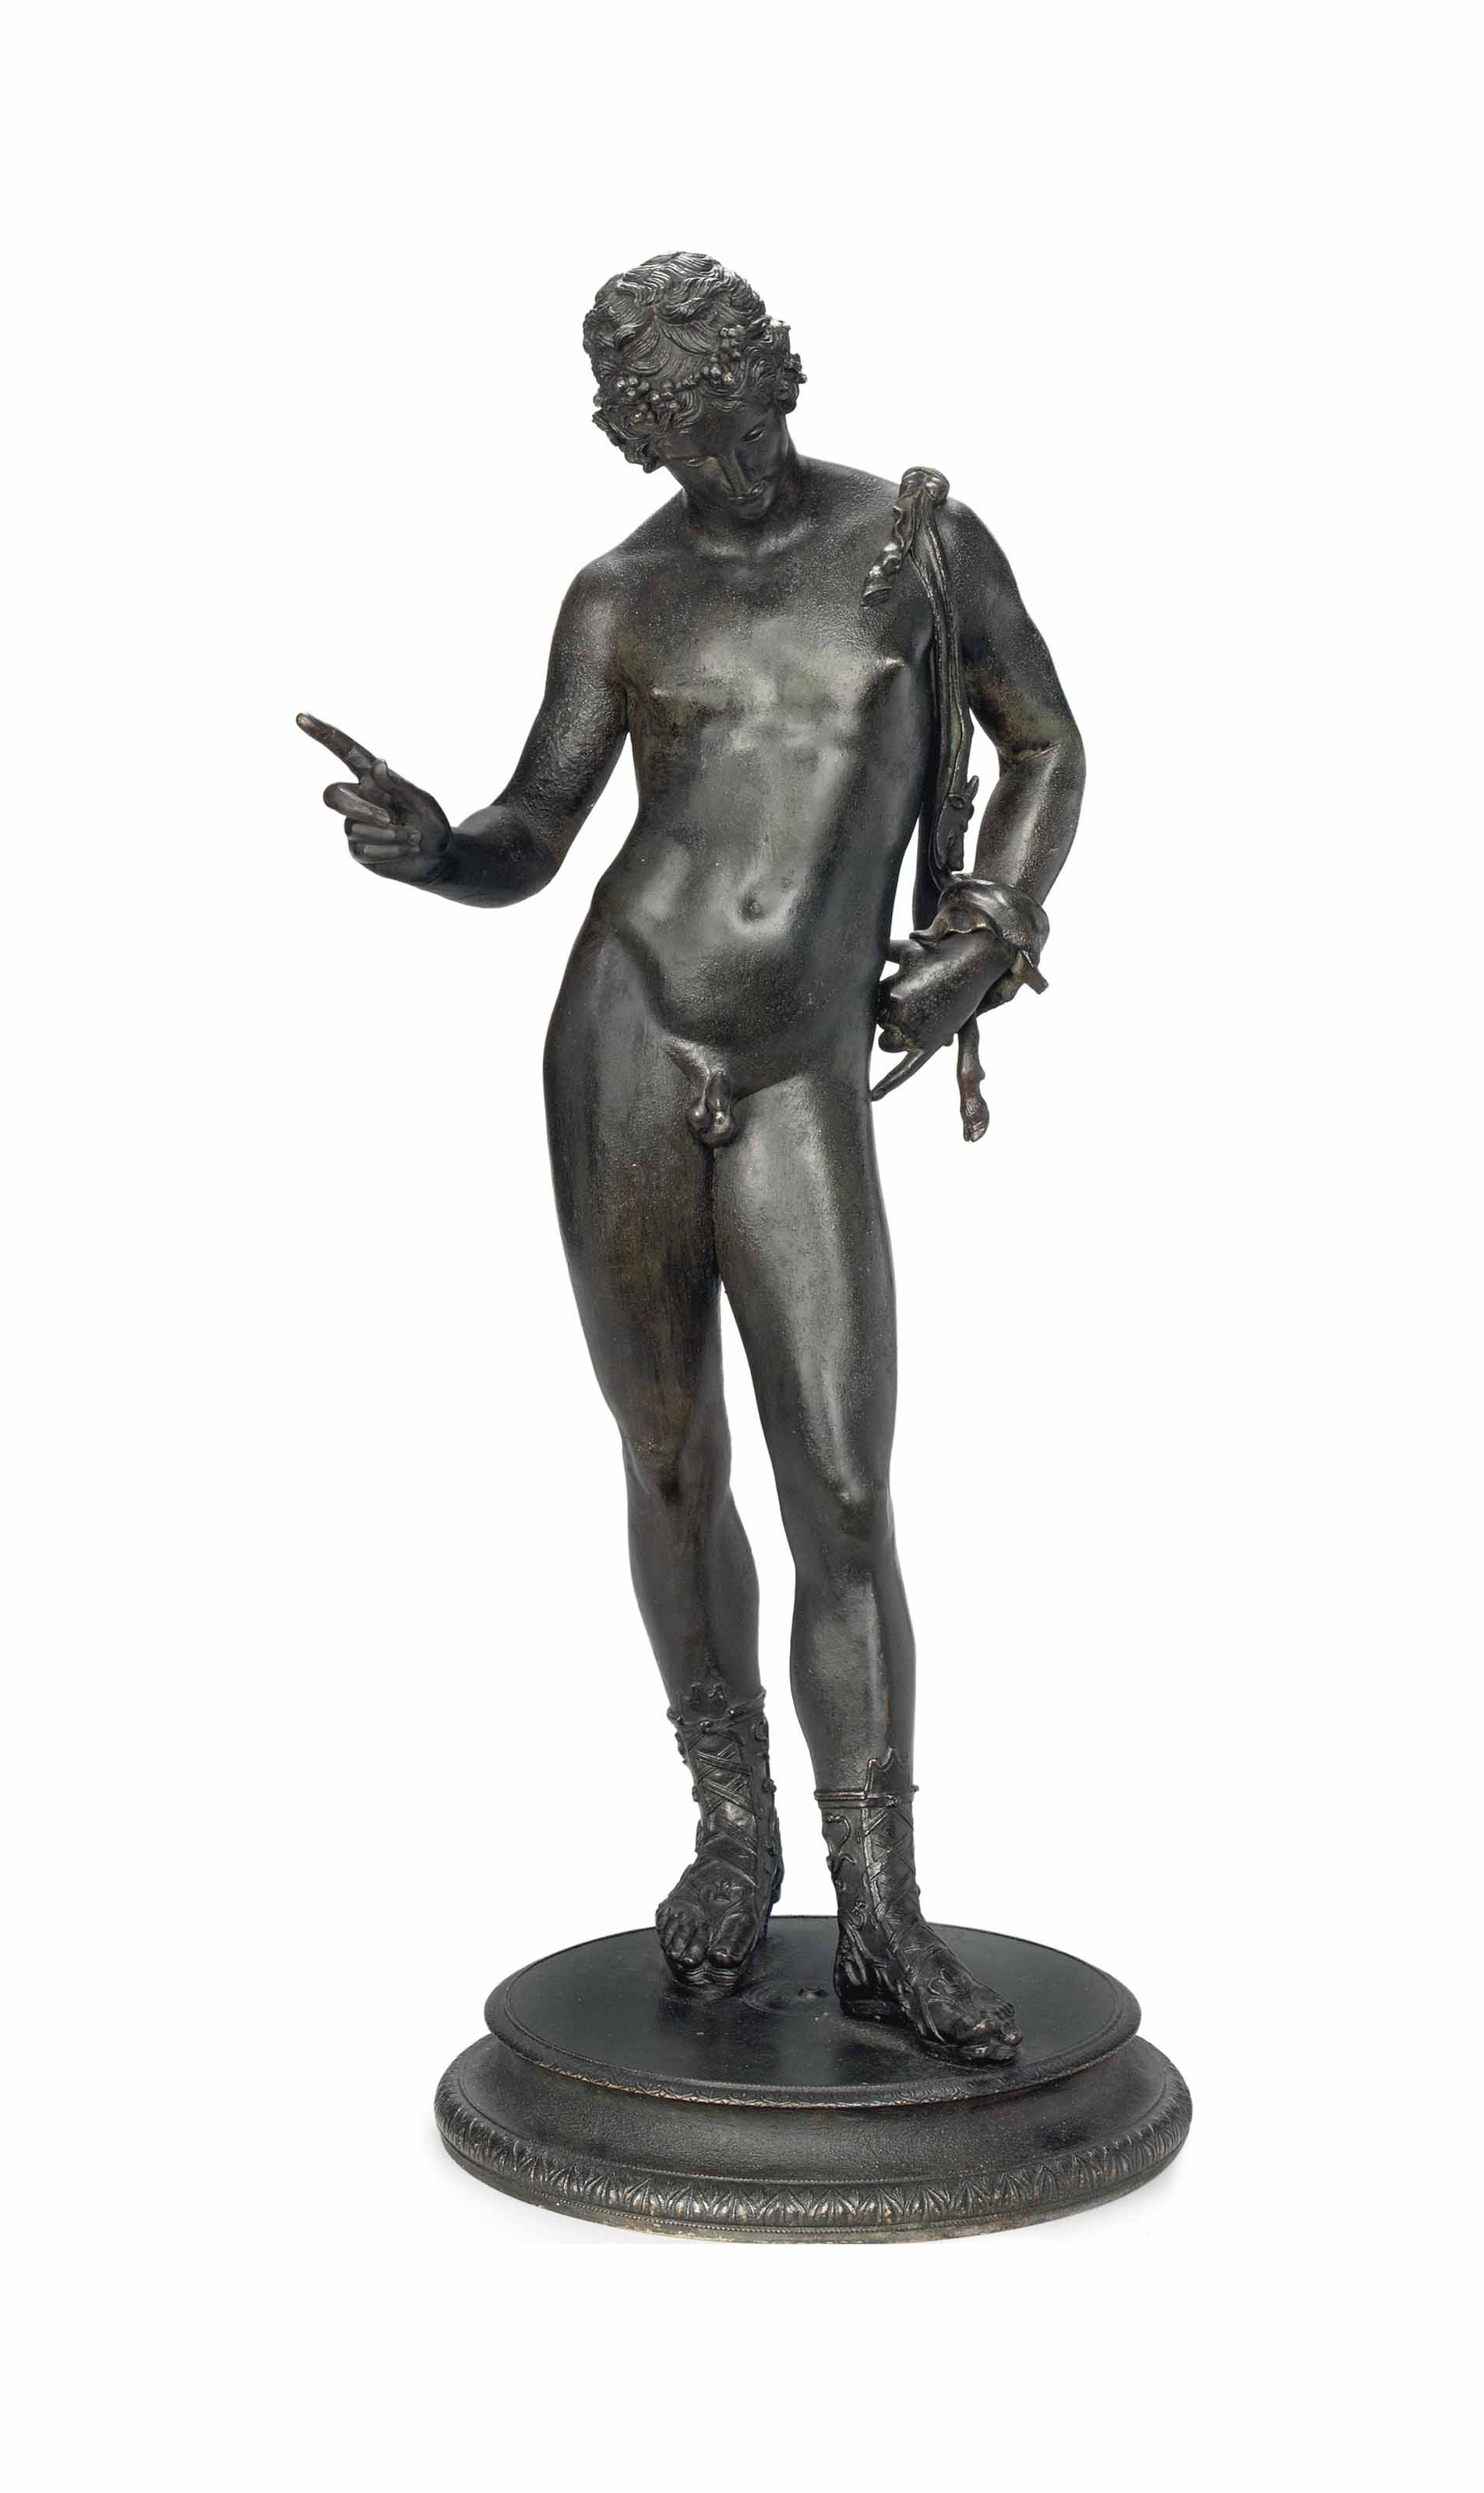 A NEAPOLITAN BRONZE MODEL OF N